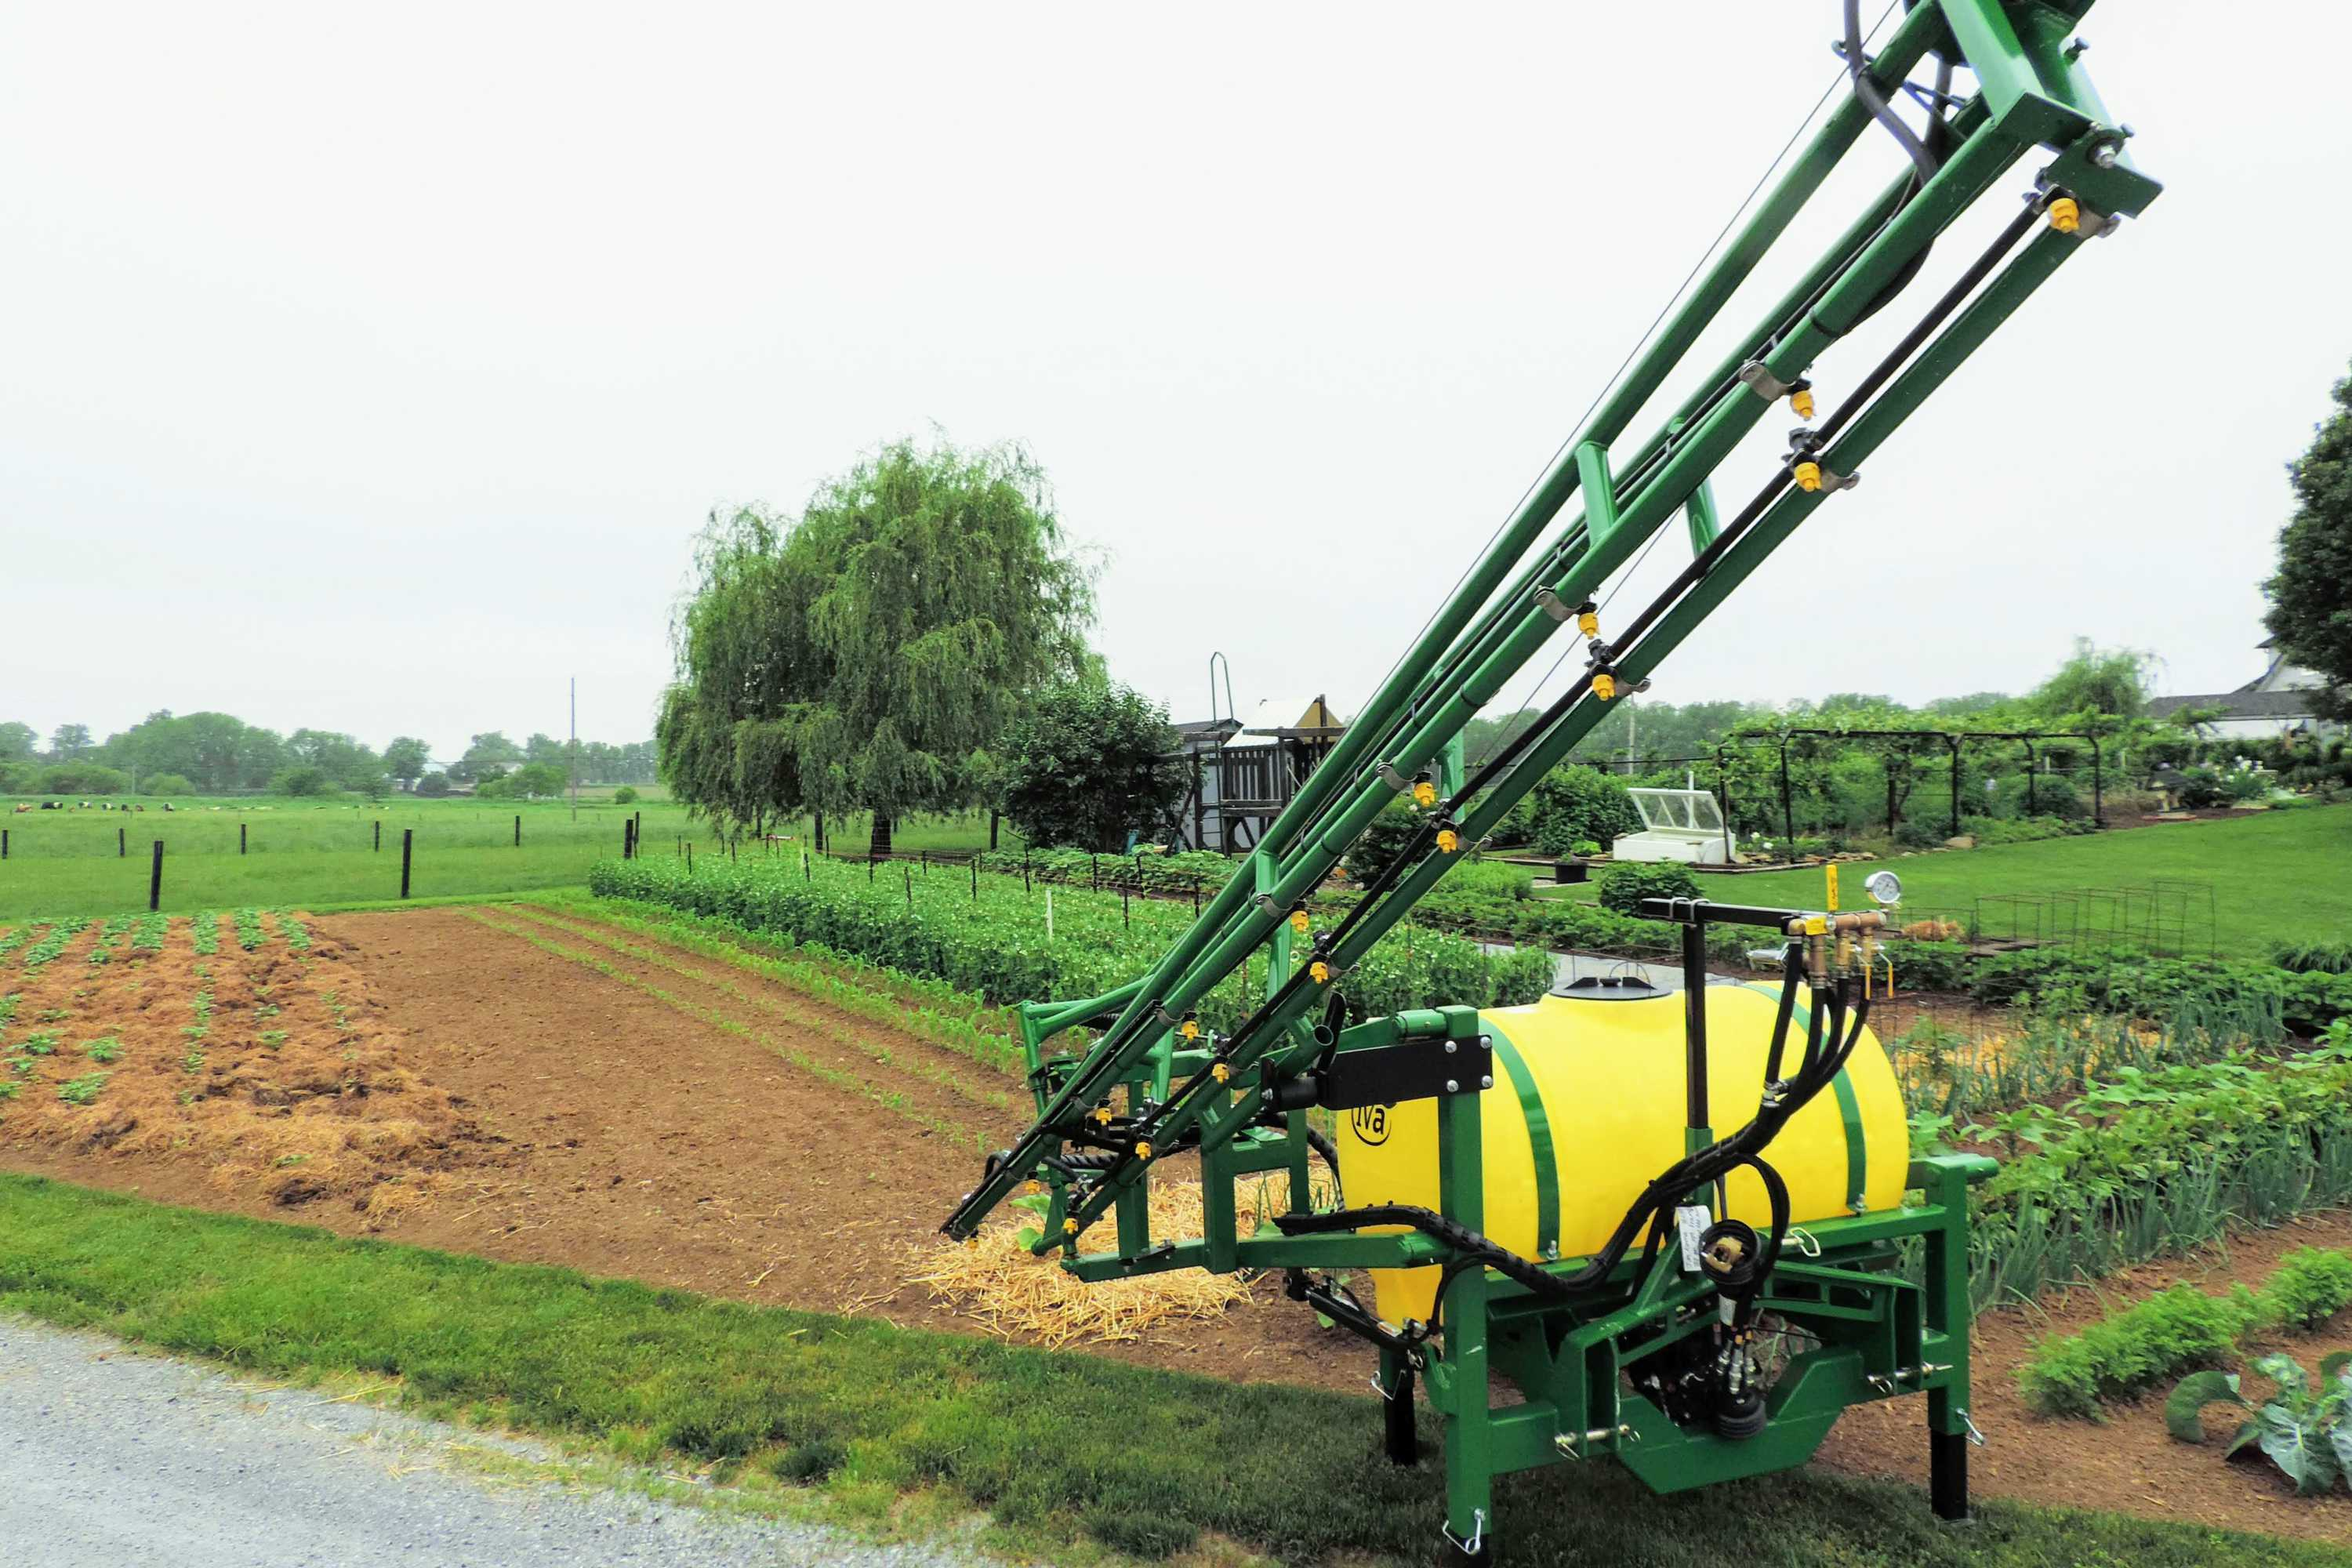 200 gallon 3-point hitch sprayer with 25' single sided boom